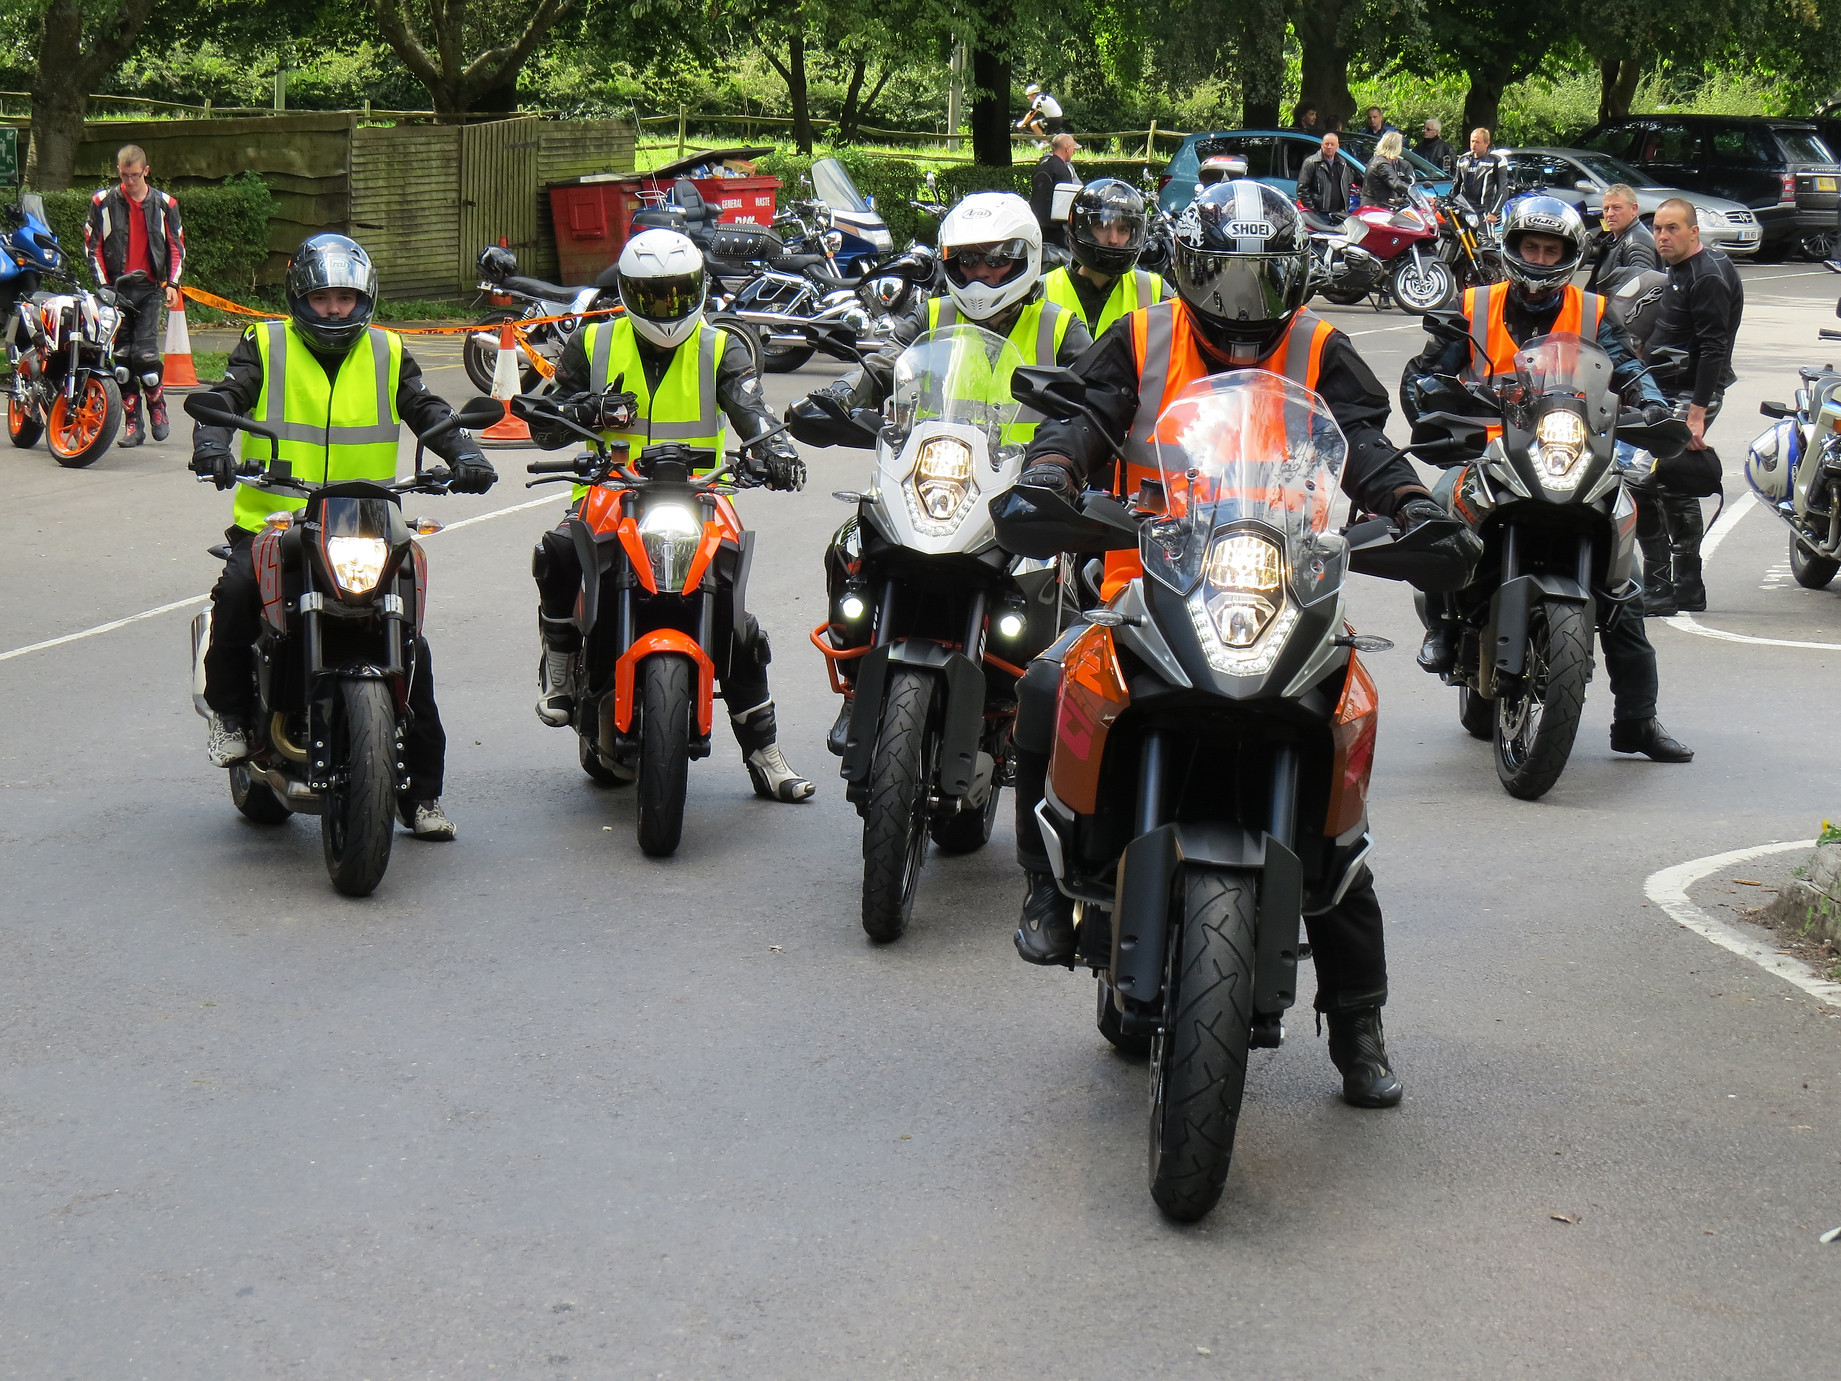 Motorcycle test ride group